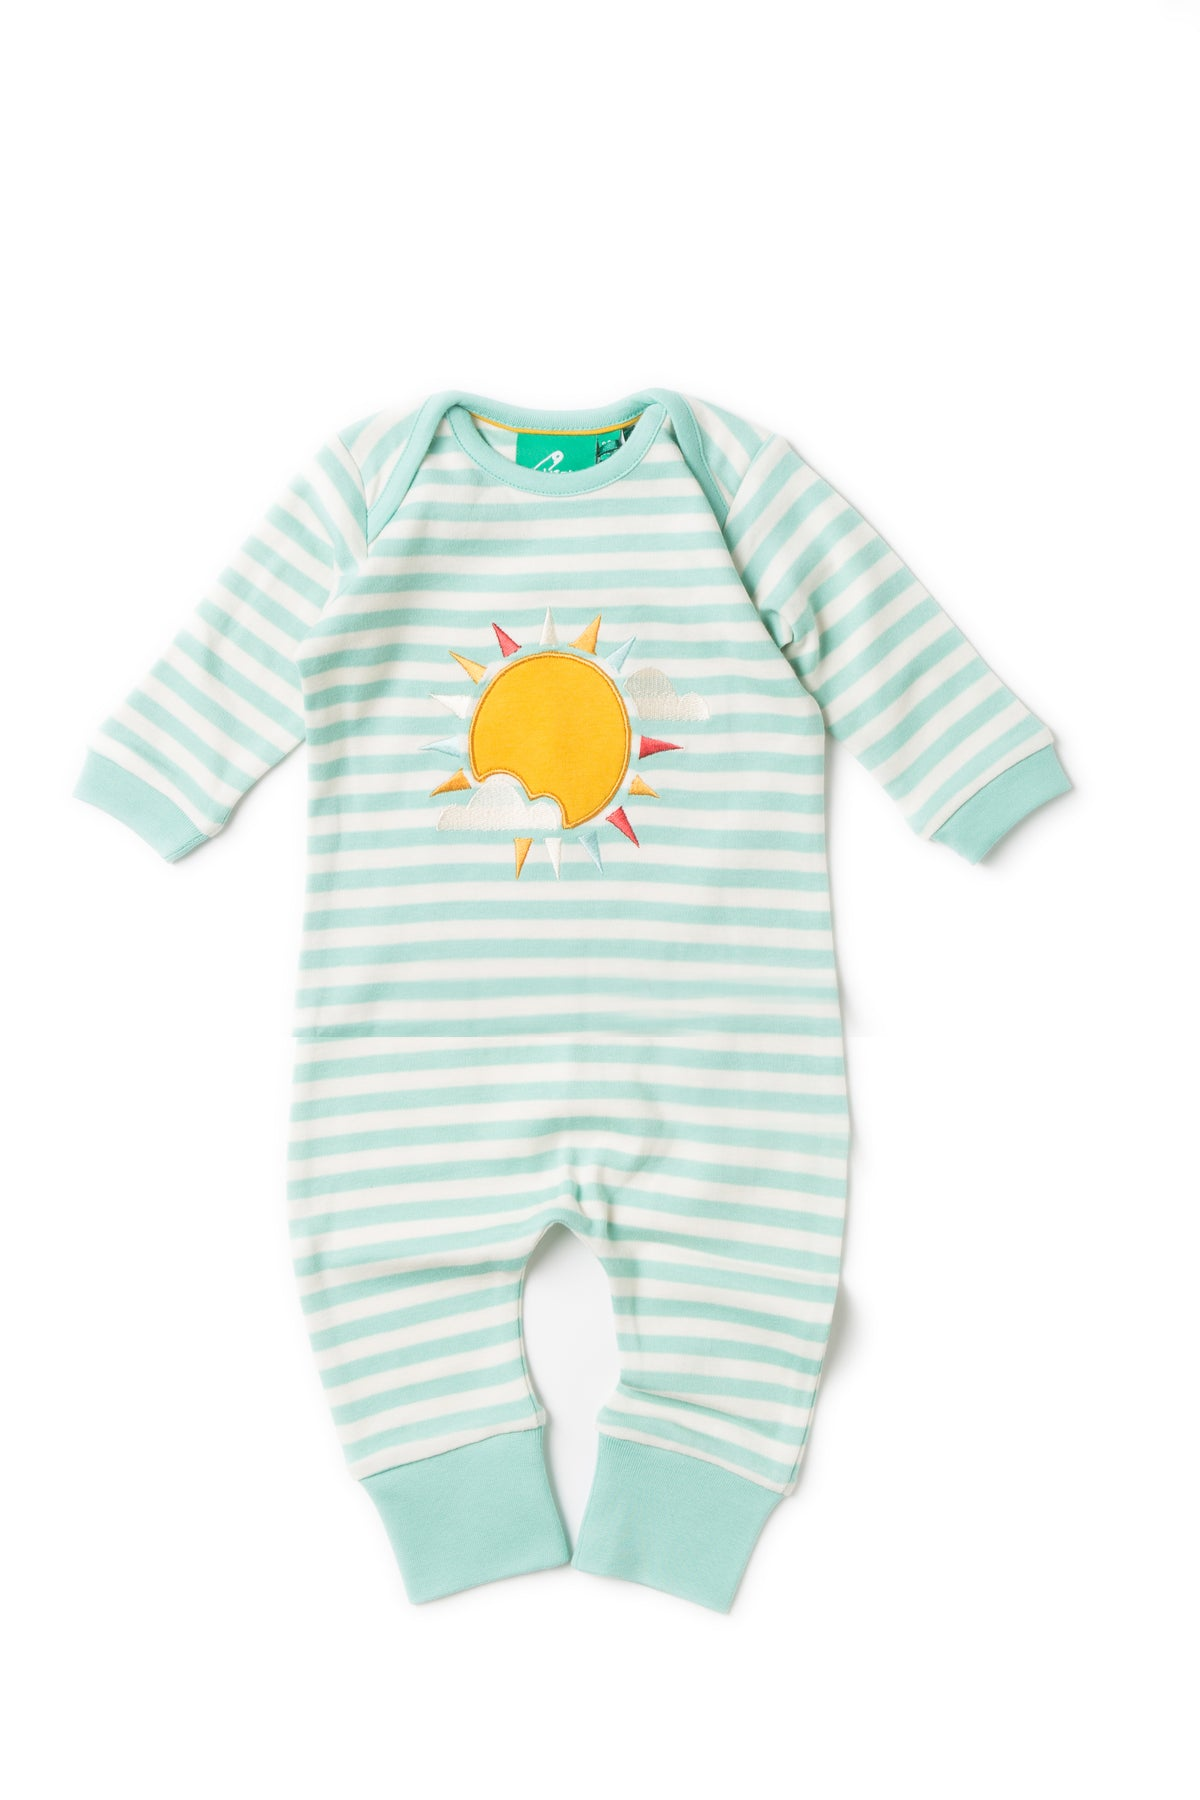 Follow The Sun Applique Babygrow